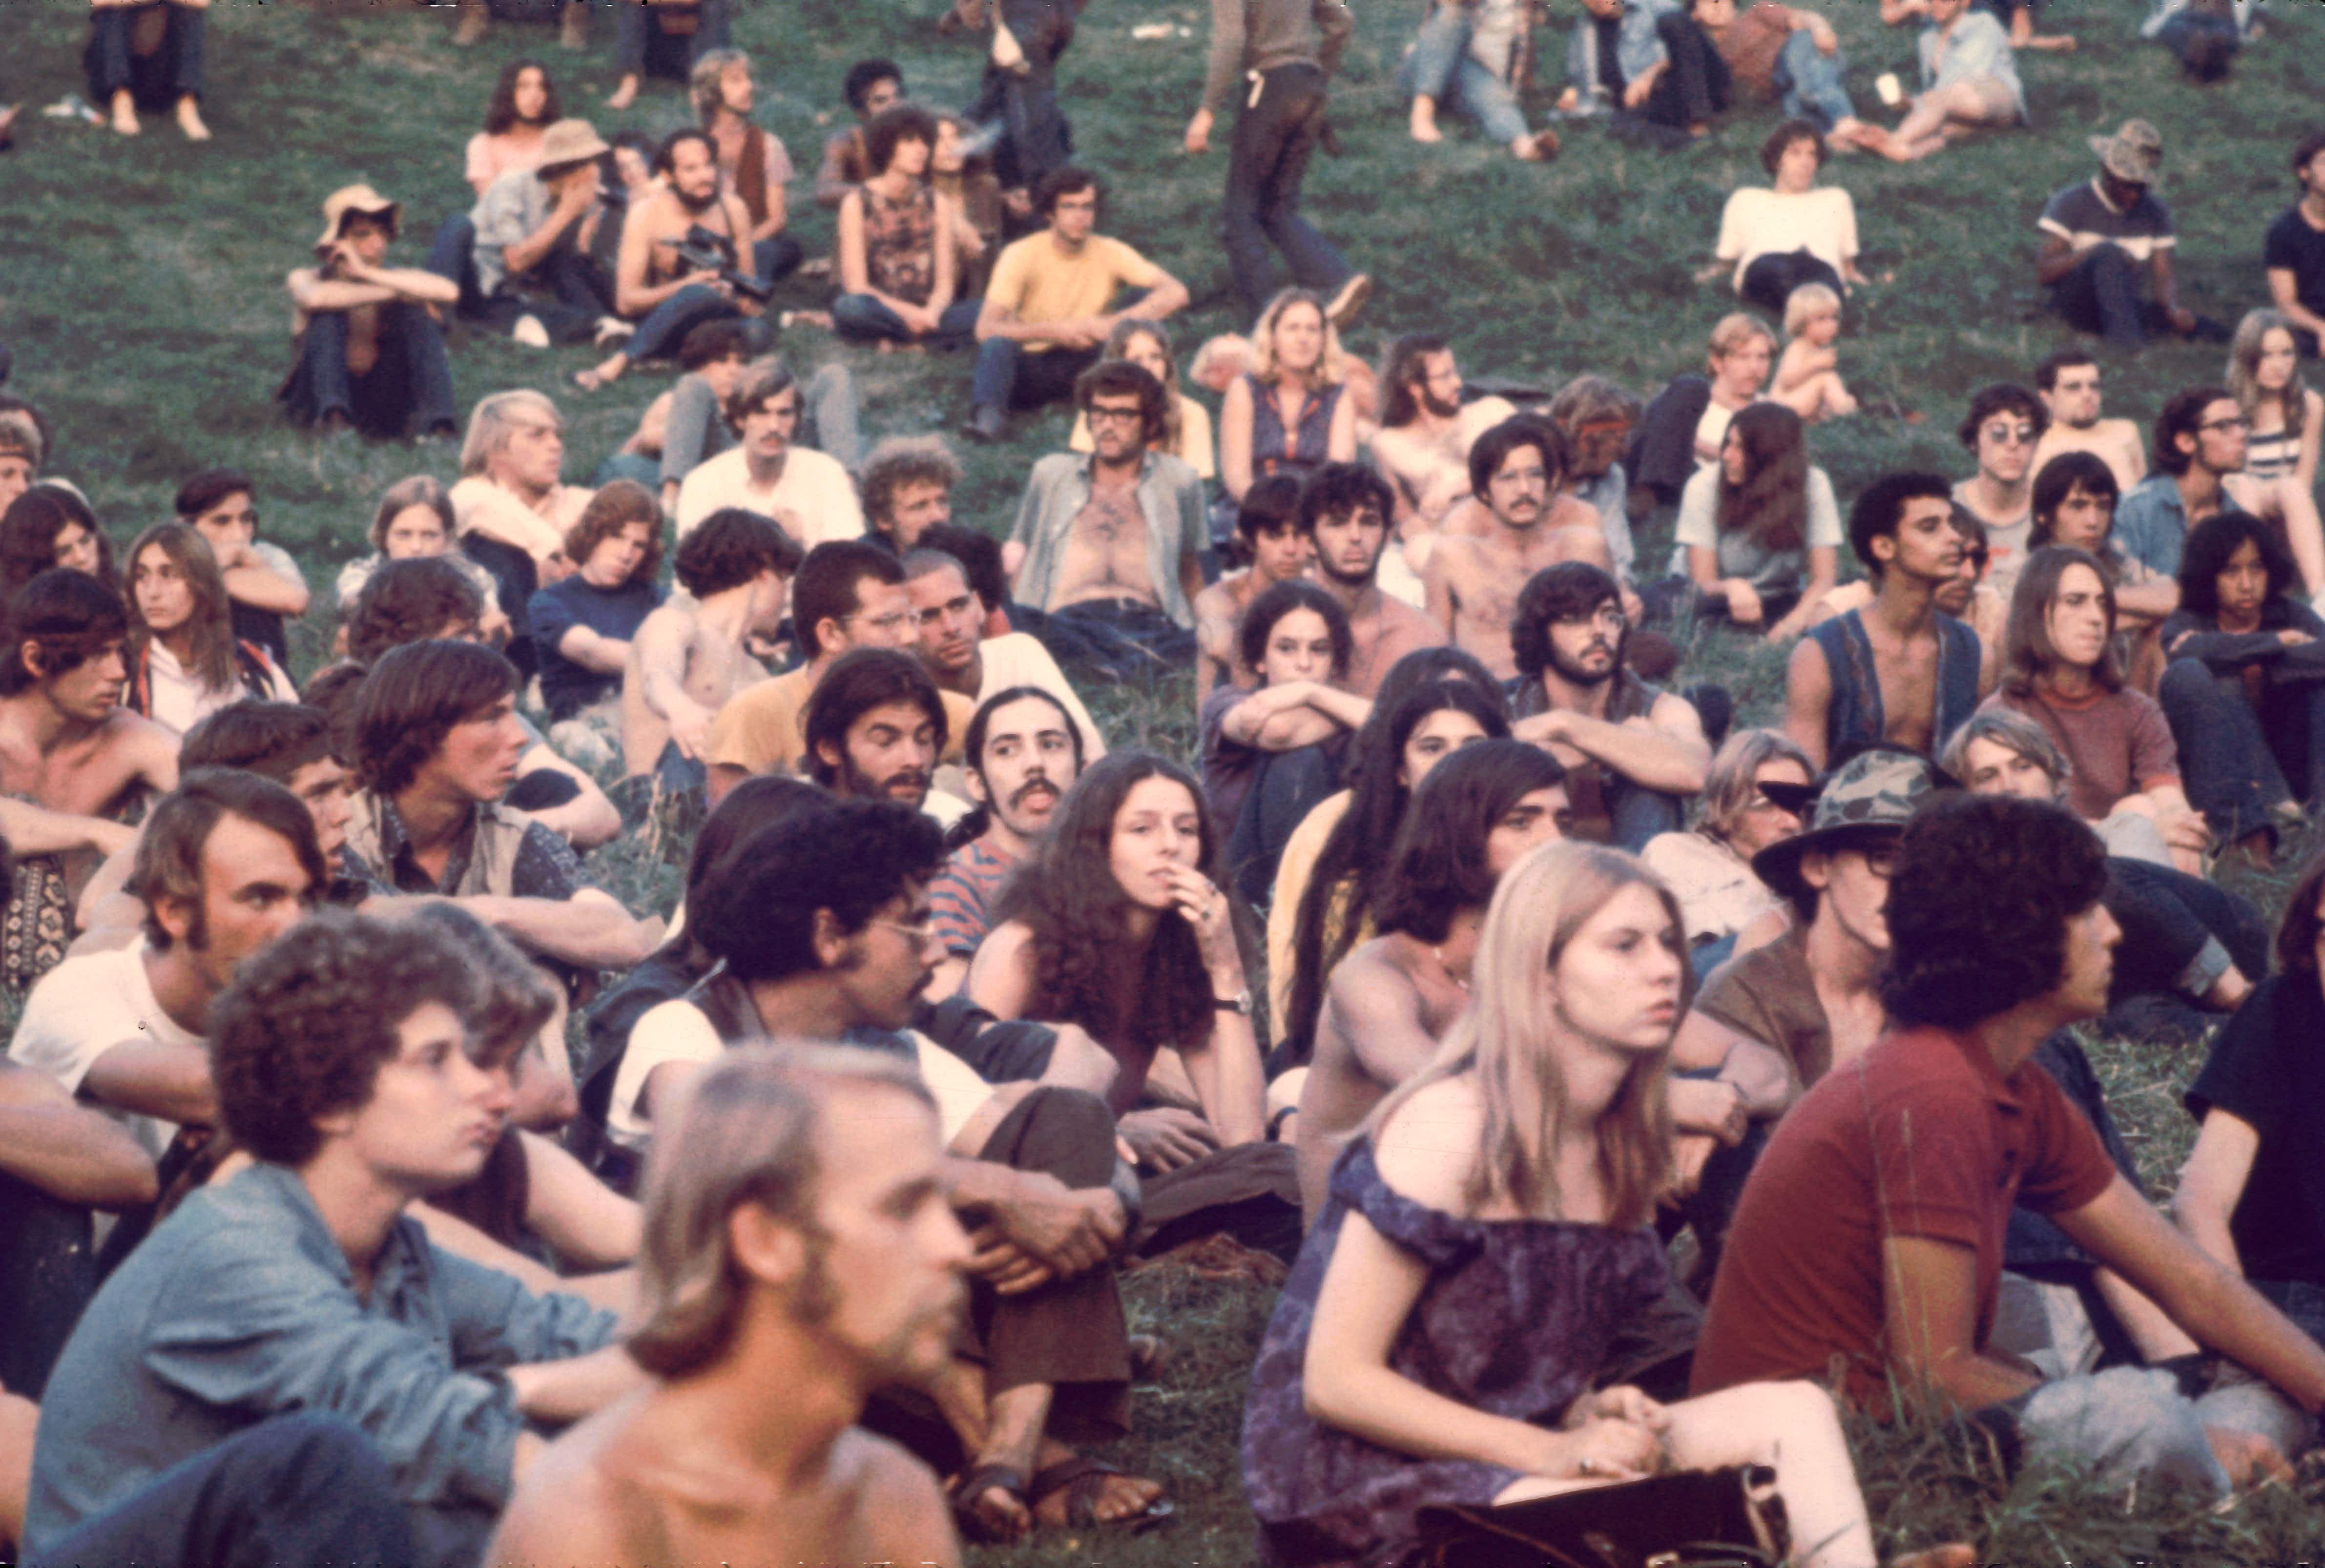 The grounds of 1969 Woodstock has been added to the National Register of Historic Places